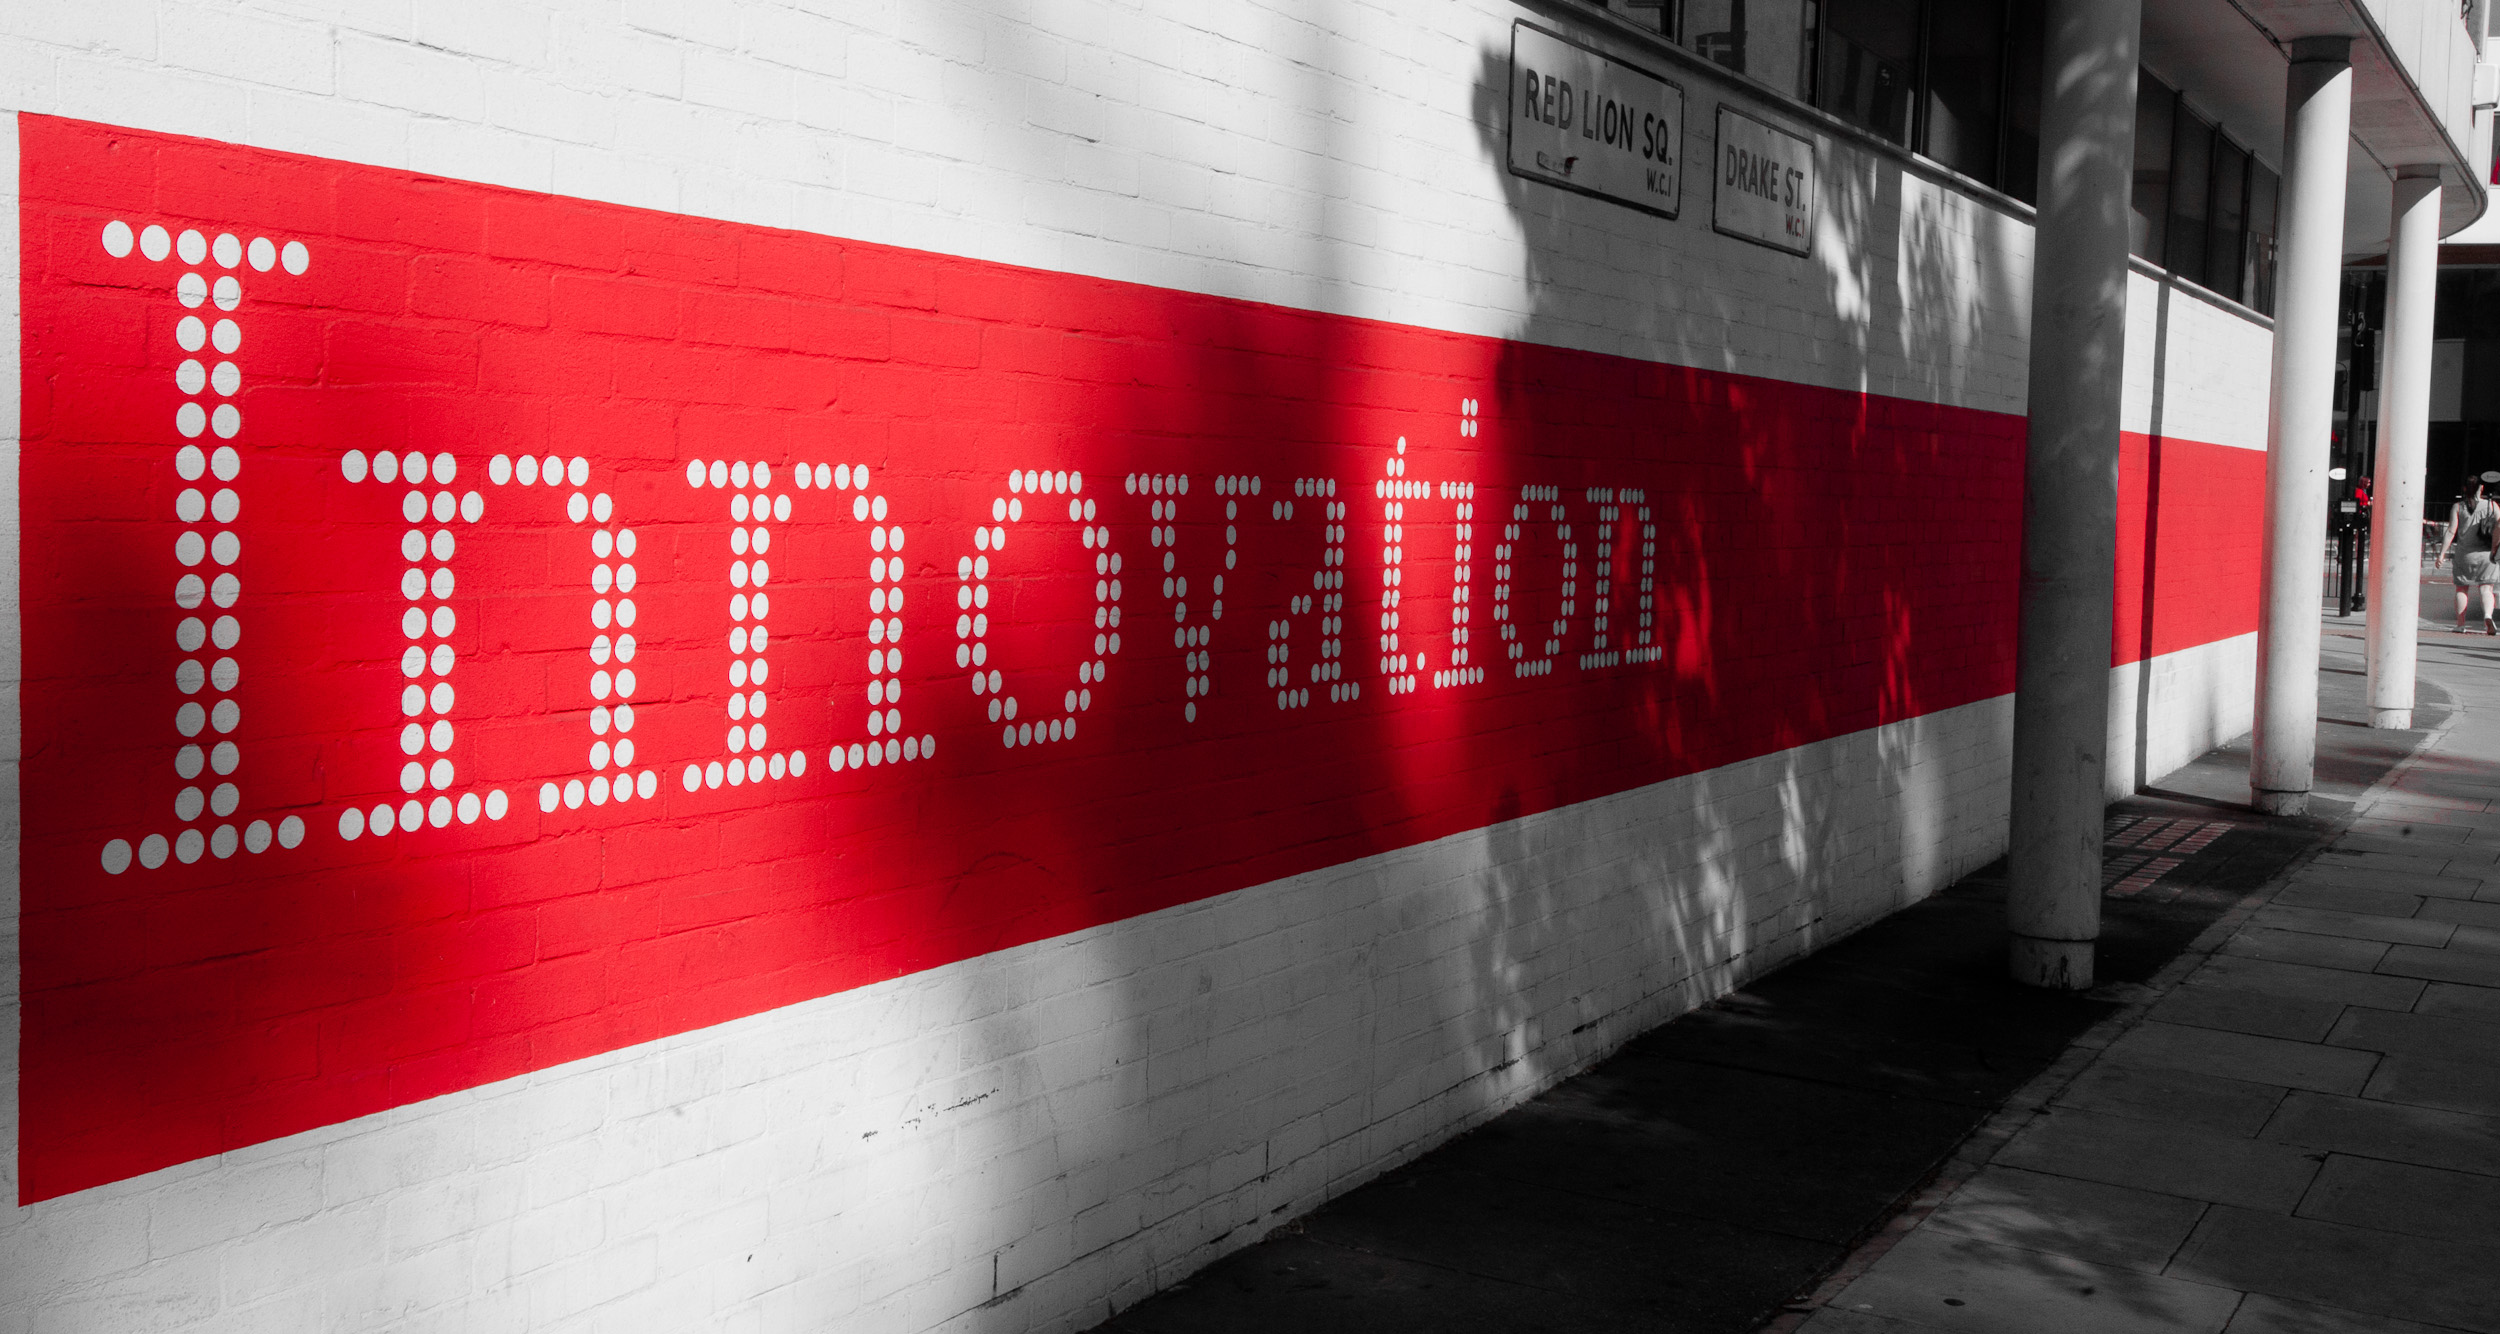 Innovation, by Boegh on Flickr